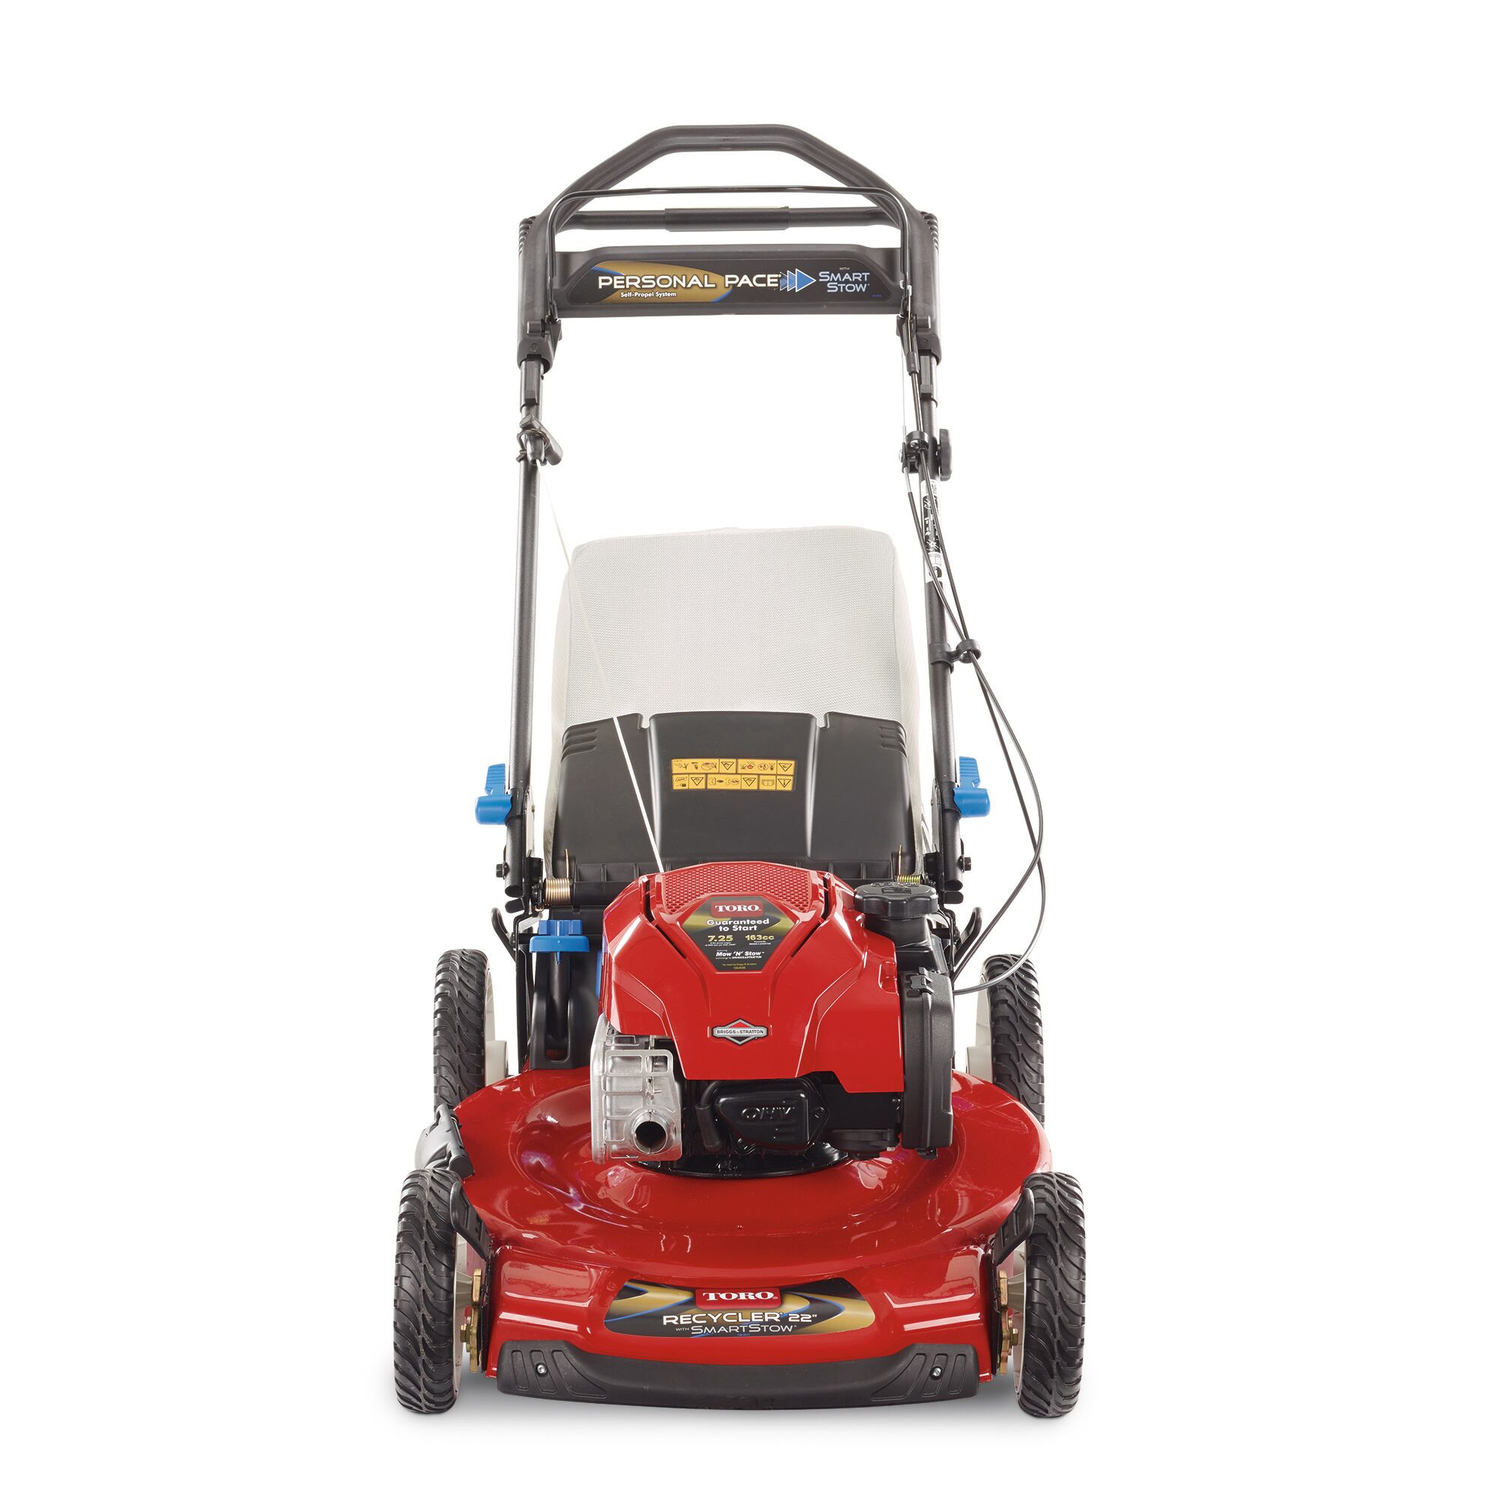 Toro SmartStow Personal Pace 22 in. 163 cc Self-Propelled Lawn Mower